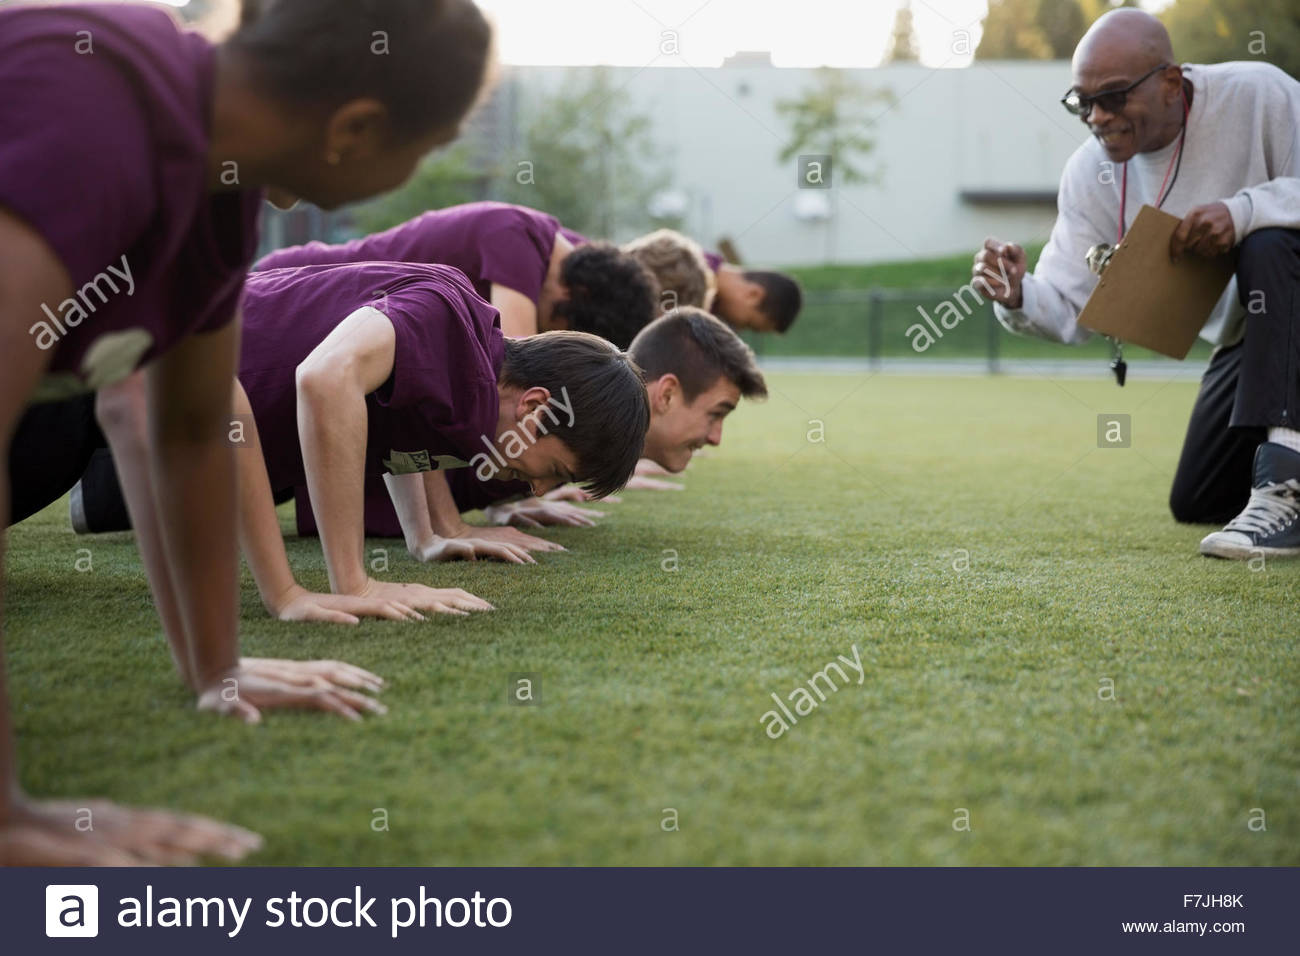 Physical education teacher encouraging students doing push-ups - Stock Image